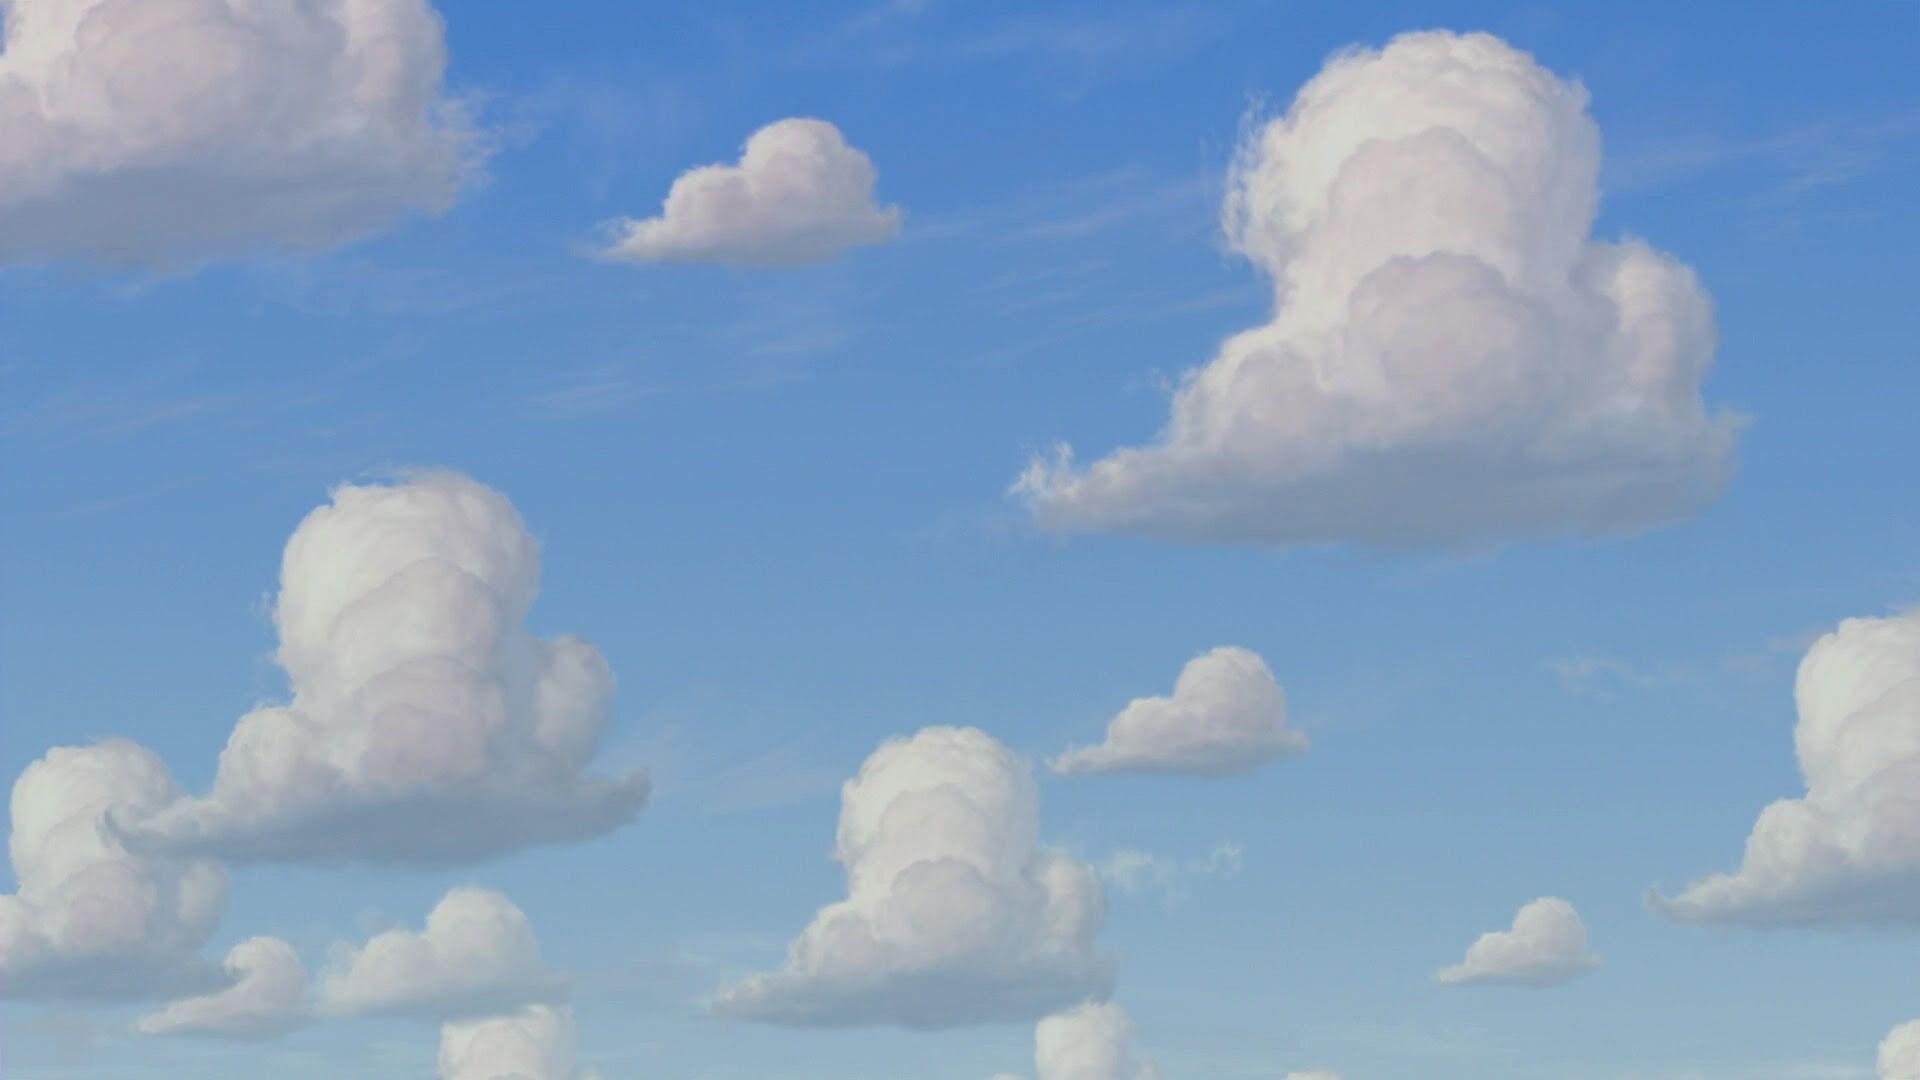 Cloud Wallpaper For Bedroom Andy 39s Bedroom Wallpaper Animated Toy Story